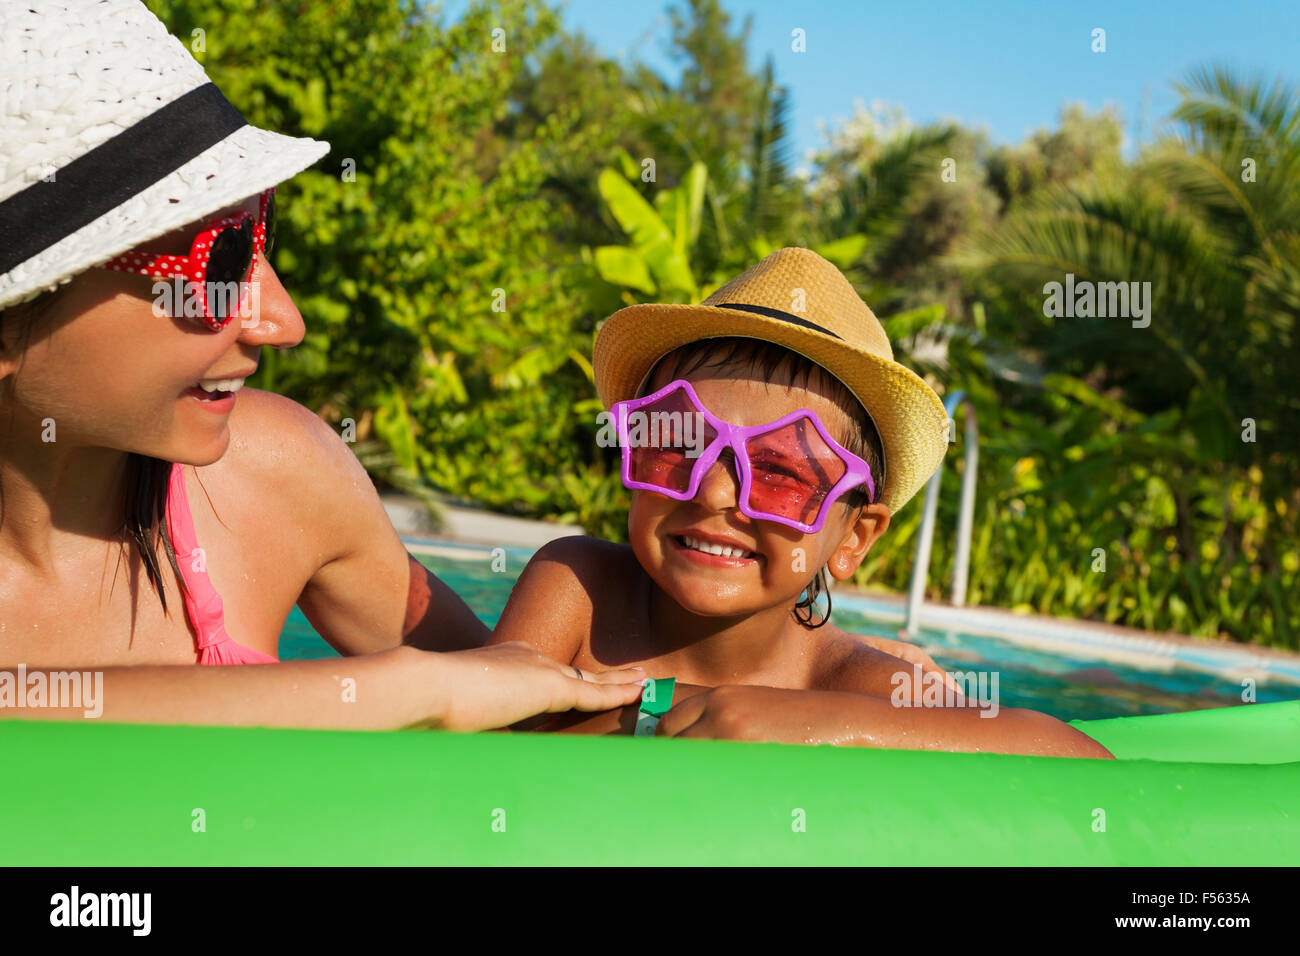 Happy mother and boy wearing sunglasses in pool - Stock Image